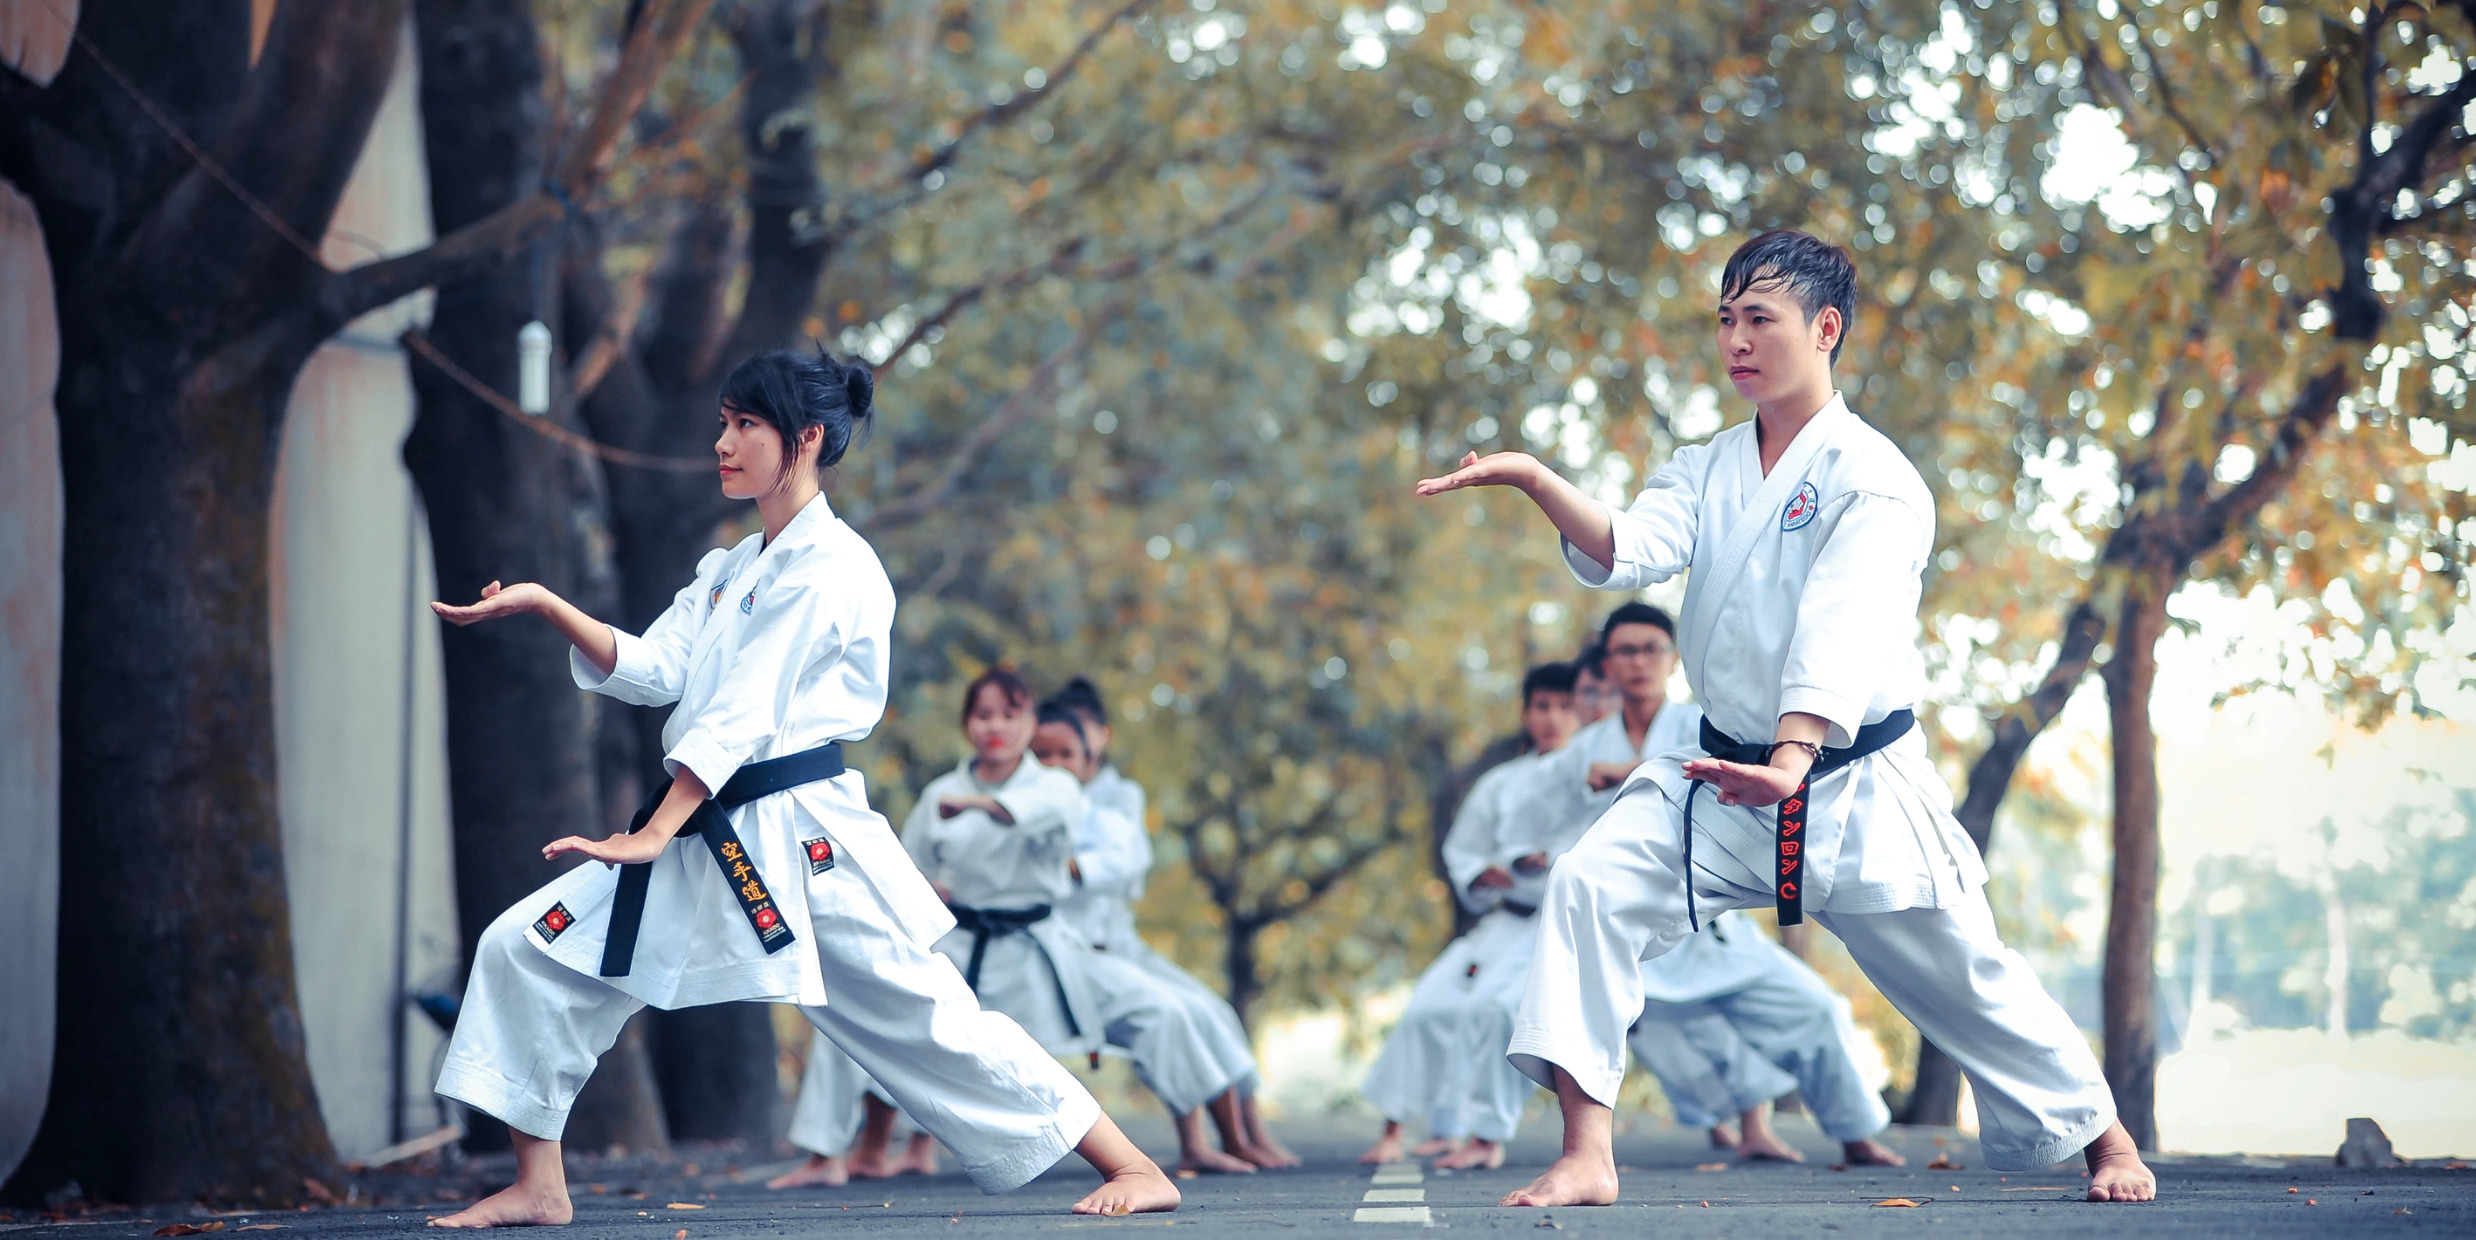 Young Karate practitioners performing the moves on the street